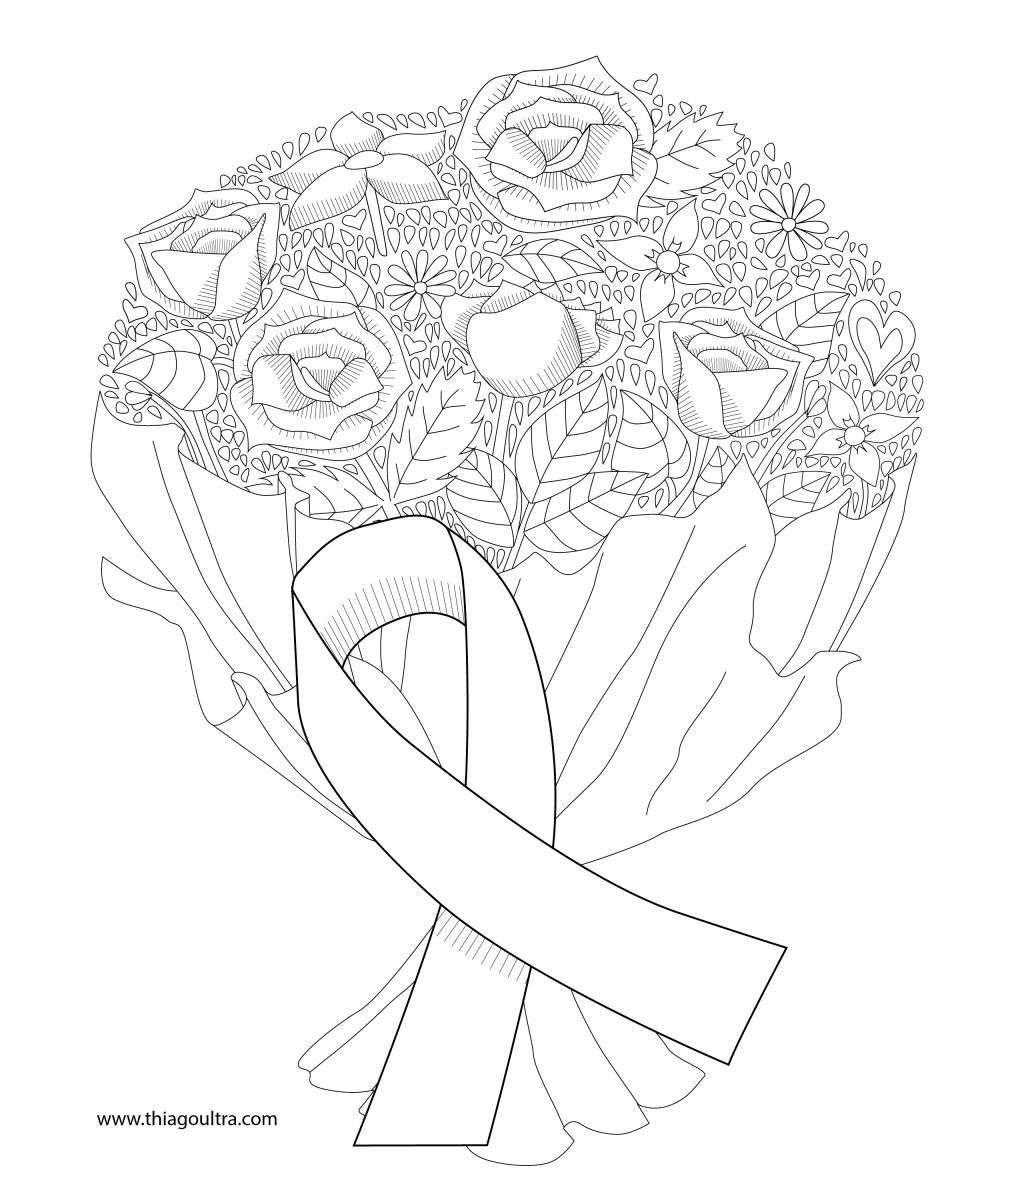 breast coloring pages - photo#14